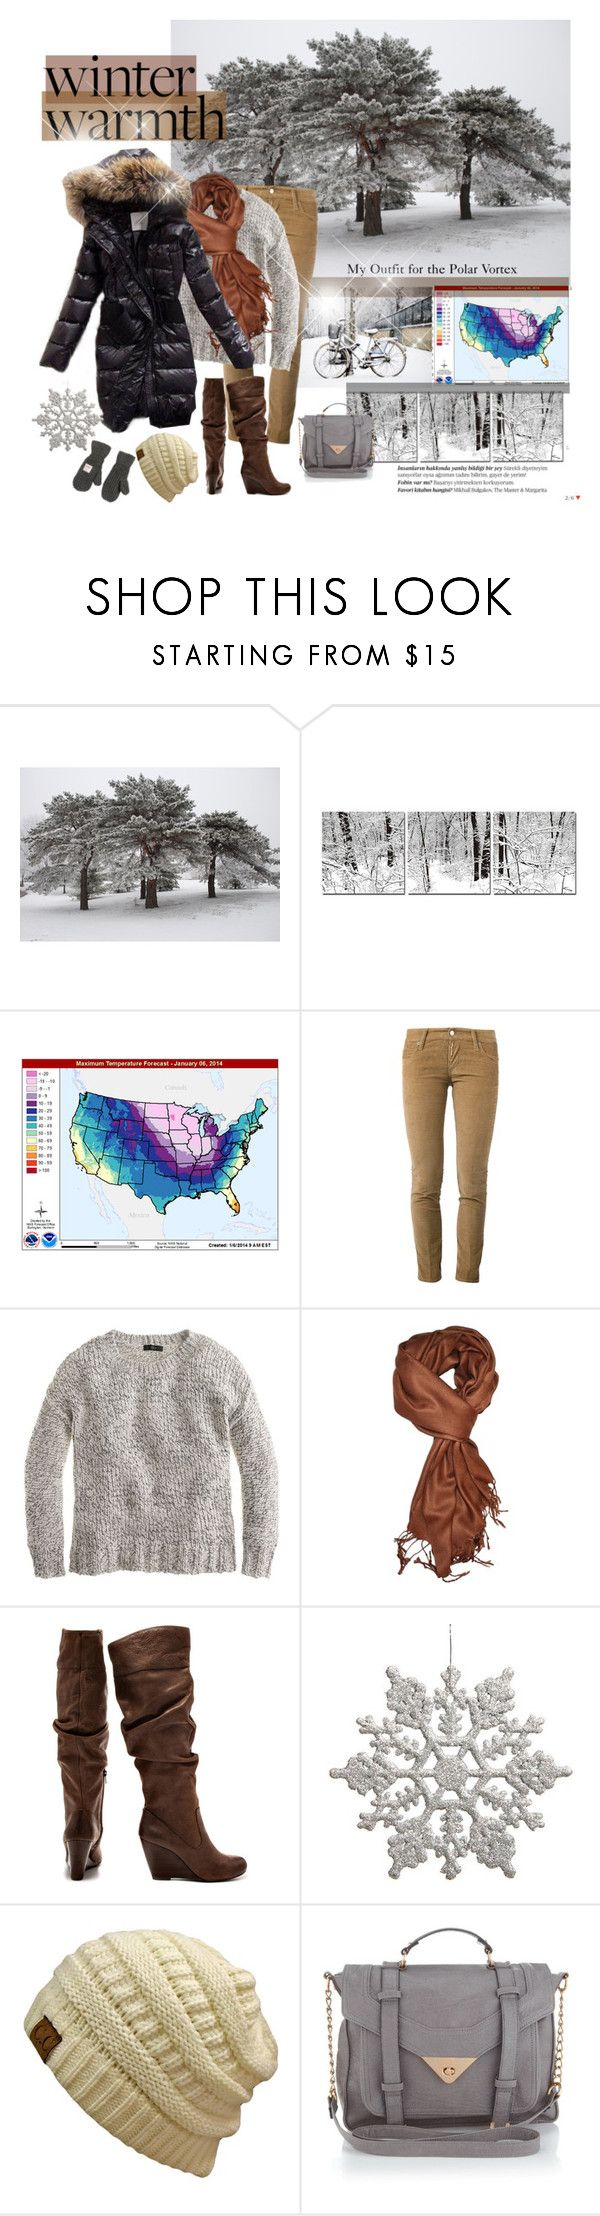 """""""Polar Vortex .....The Big Chill"""" by joannahdawn ❤ liked on Polyvore featuring Balmain, Stockdale, Dsquared2, J.Crew, Jessica Simpson, Lipsy and Superdry"""